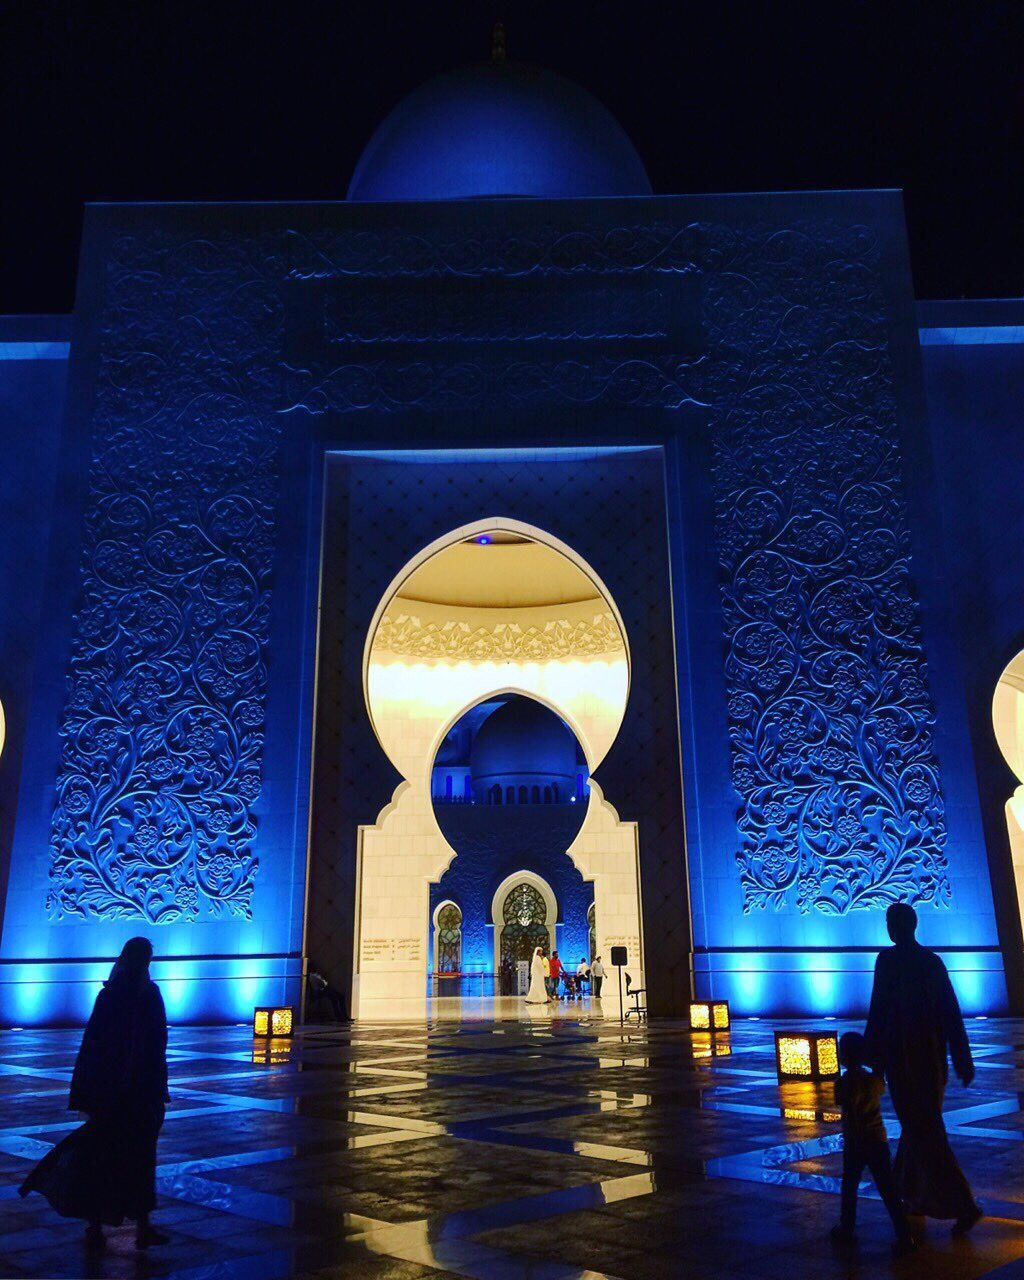 spirituality, religion, illuminated, night, place of worship, arch, built structure, real people, rear view, walking, full length, architecture, travel destinations, two people, travel, indoors, lifestyles, women, people, adult